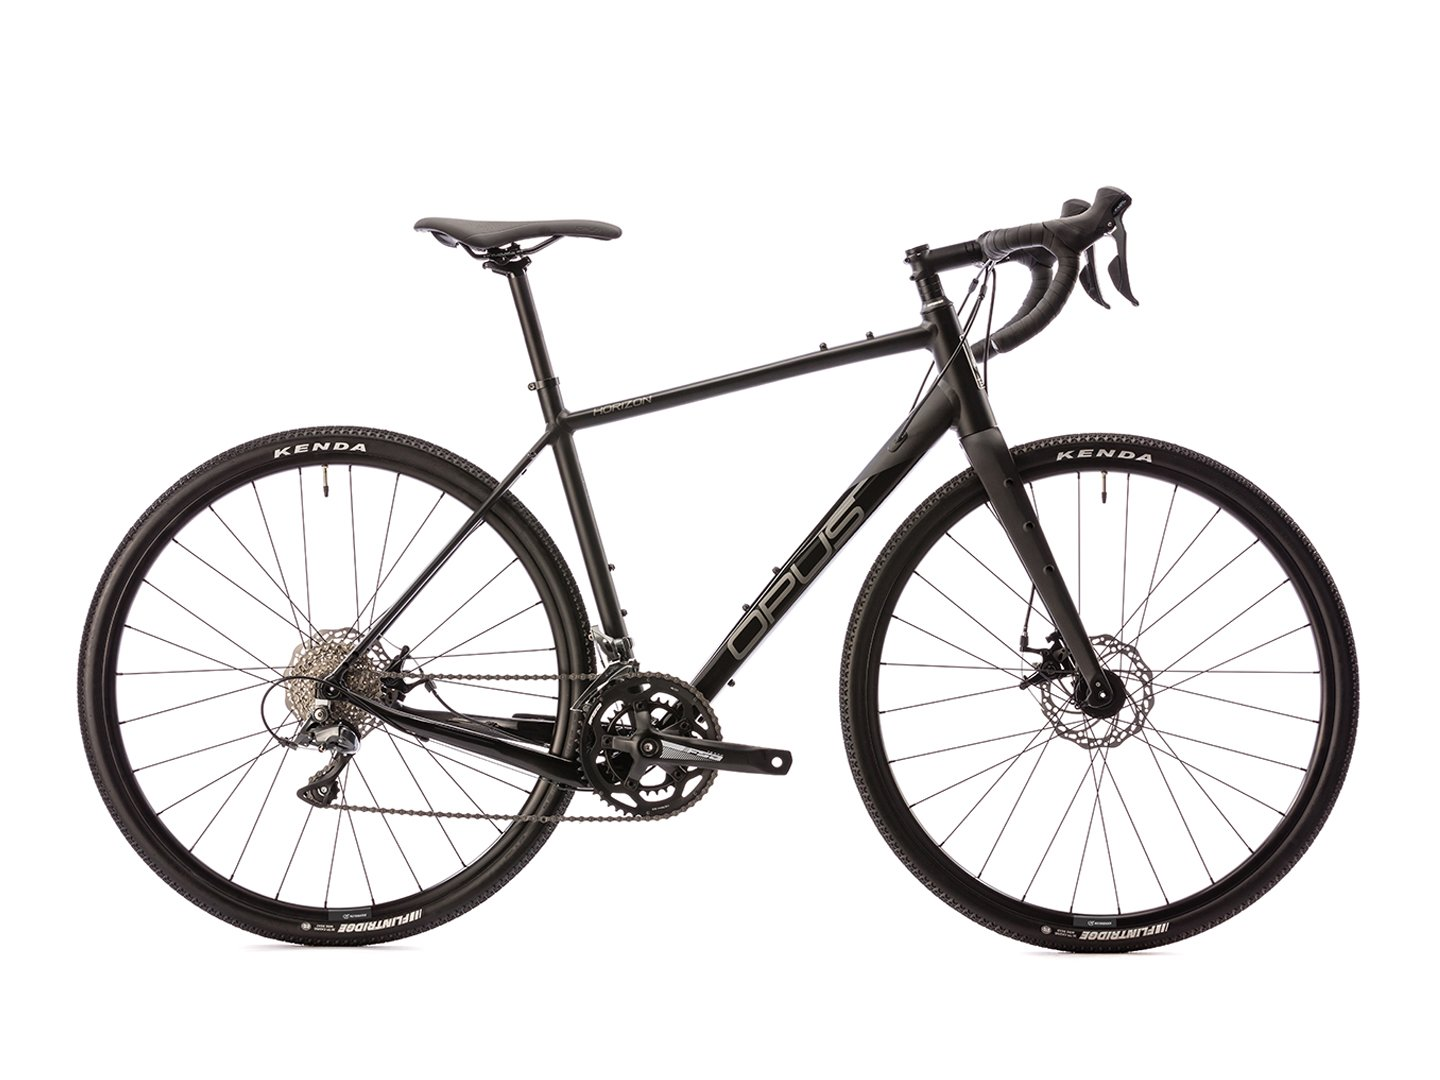 Opus road bike